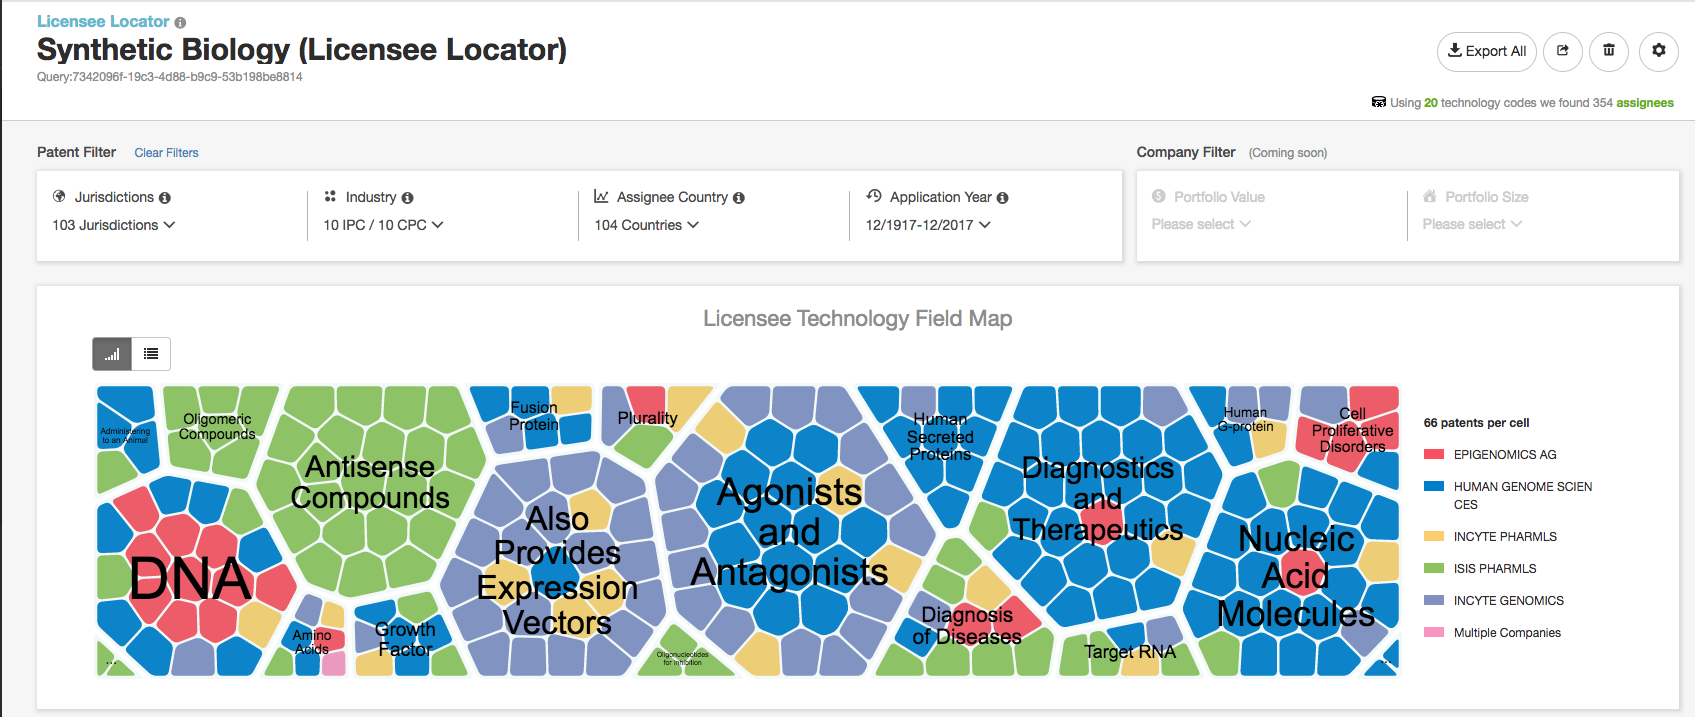 Licensee Locator Tool Synthetic Biology